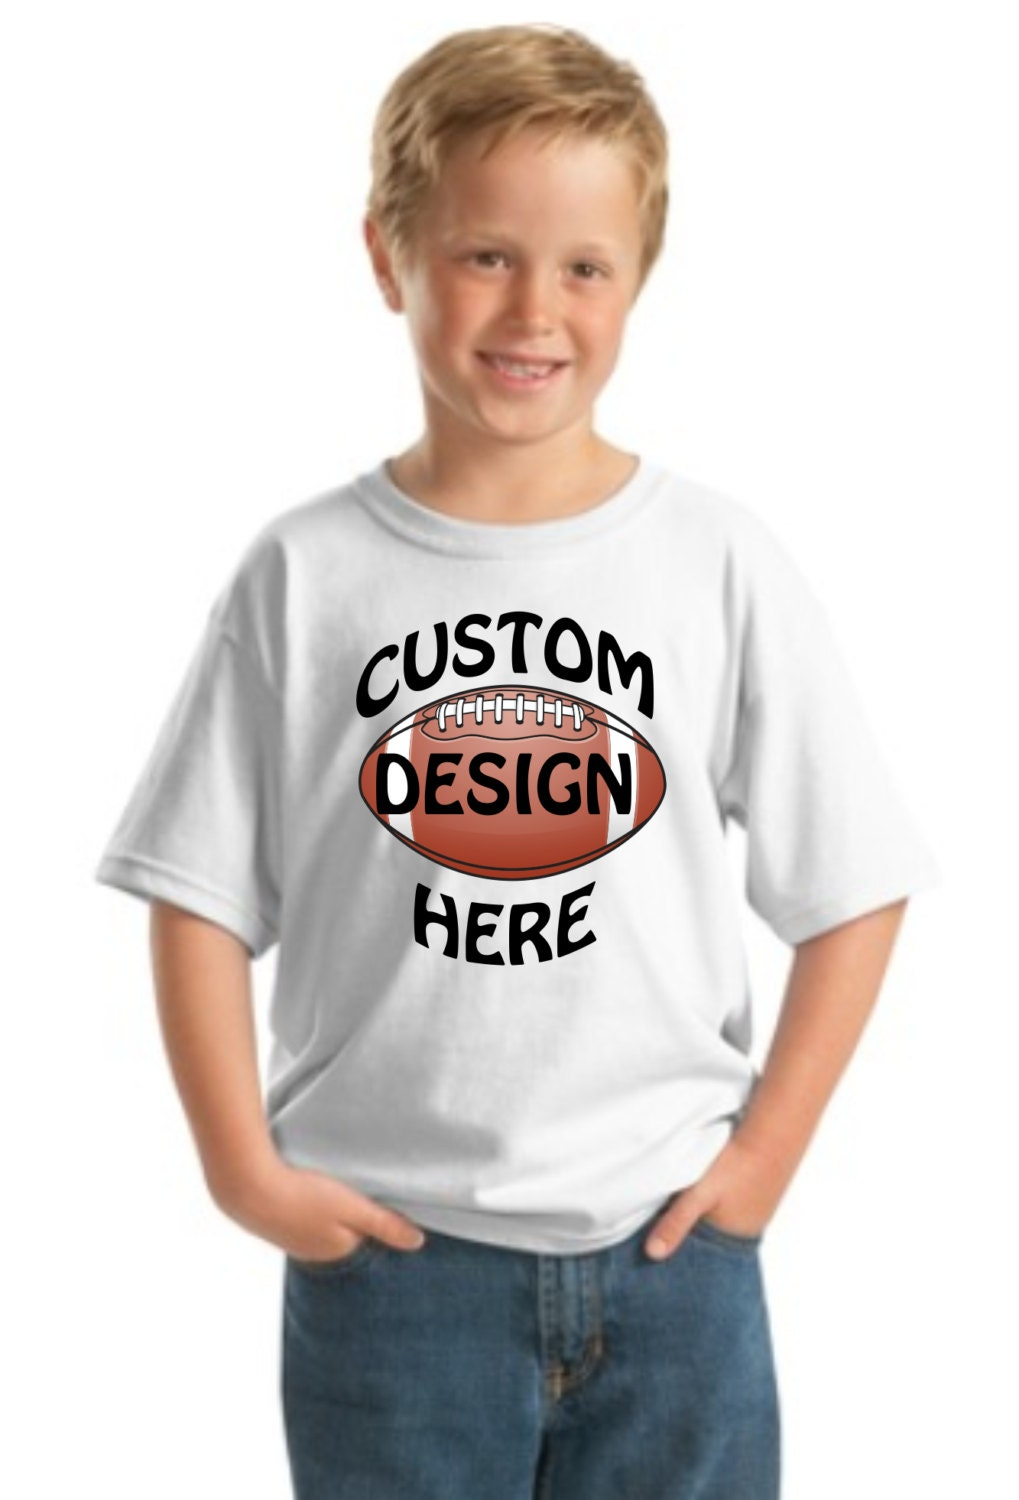 Youth T Shirt With Custom Full Color Design